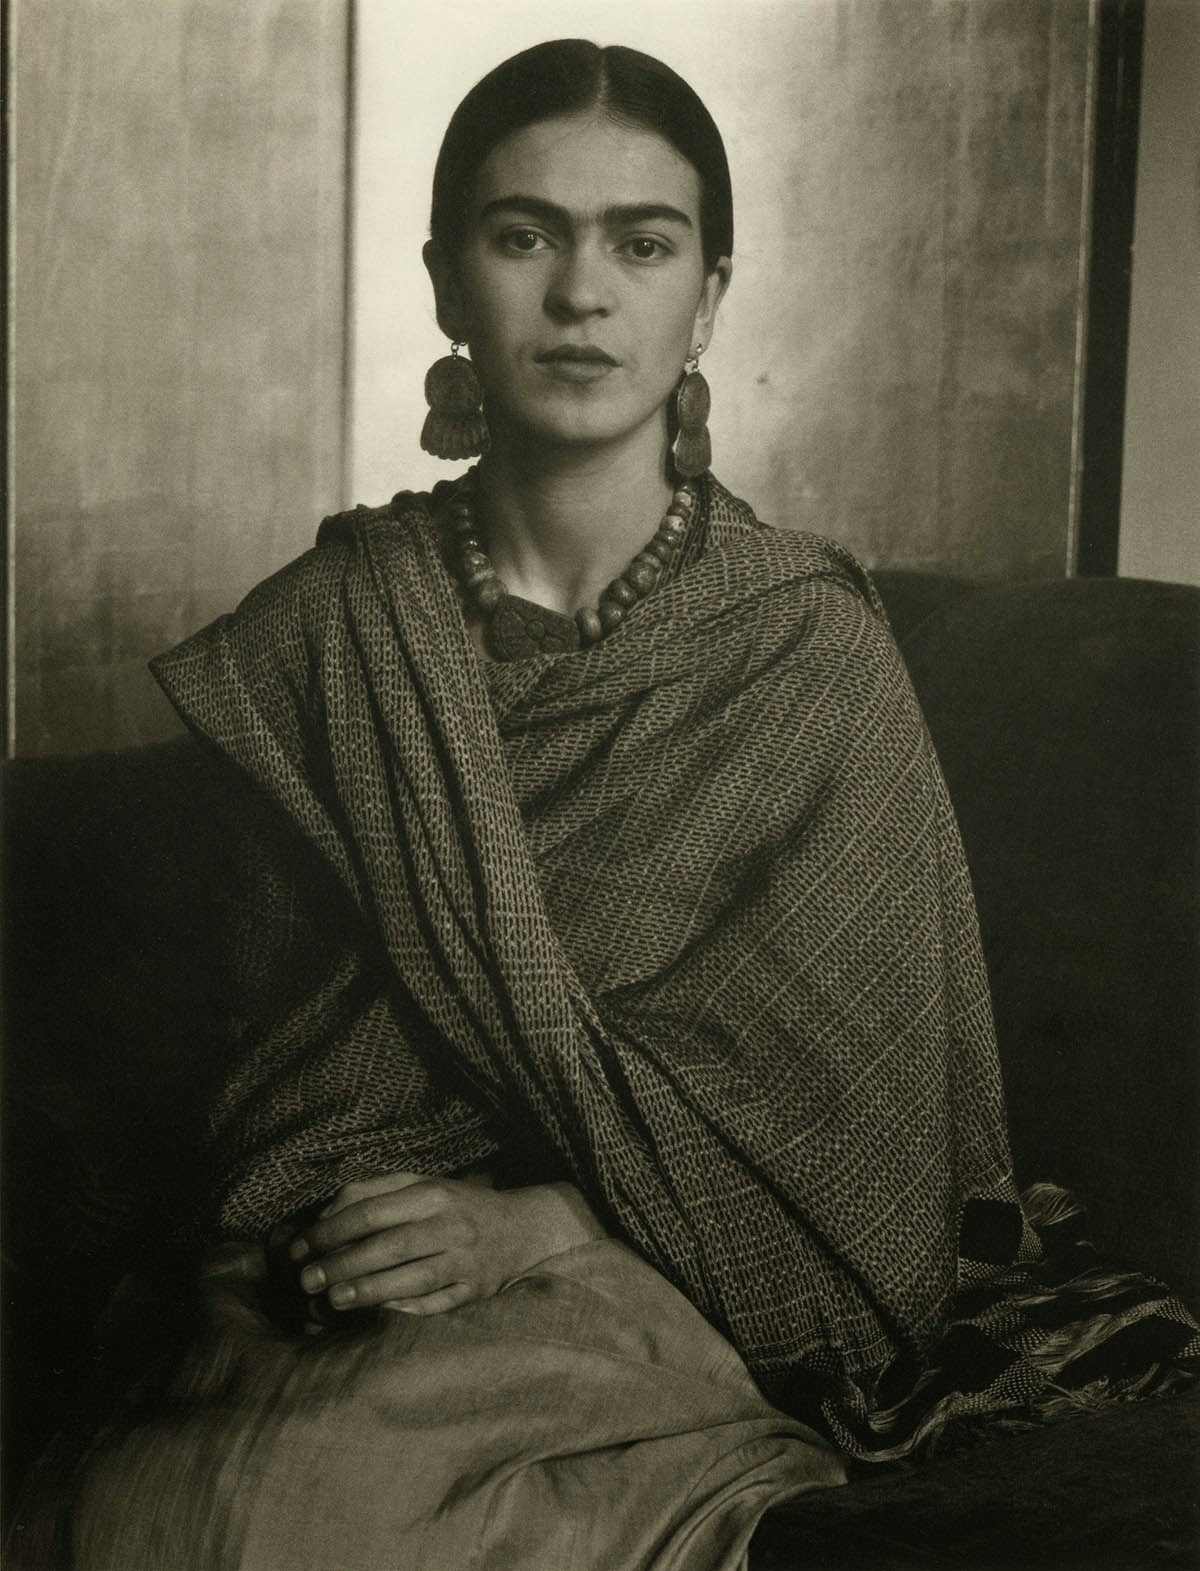 frida kahlo by imogen cunningham 1930 frida kahlo by julien